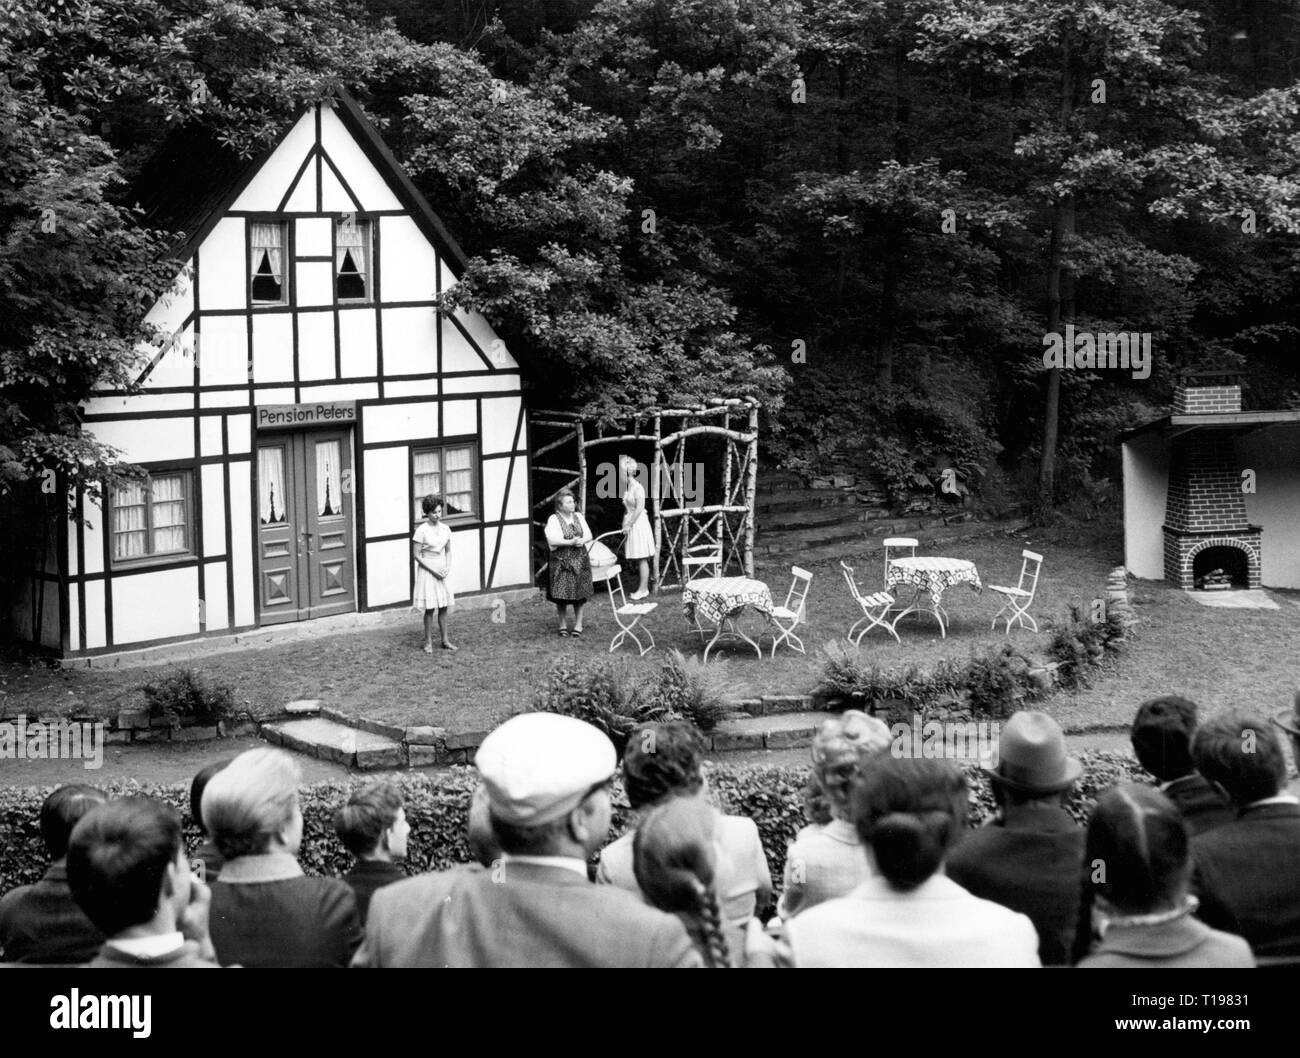 theatre / theater, open-air theatre, sylvan theater Hohensyburg, Dortmund, performance of the play 'Pfeffer und Salz' ('Pepper and Salt') of Karl Bunje, premiere: 9.6.1968, Additional-Rights-Clearance-Info-Not-Available - Stock Image